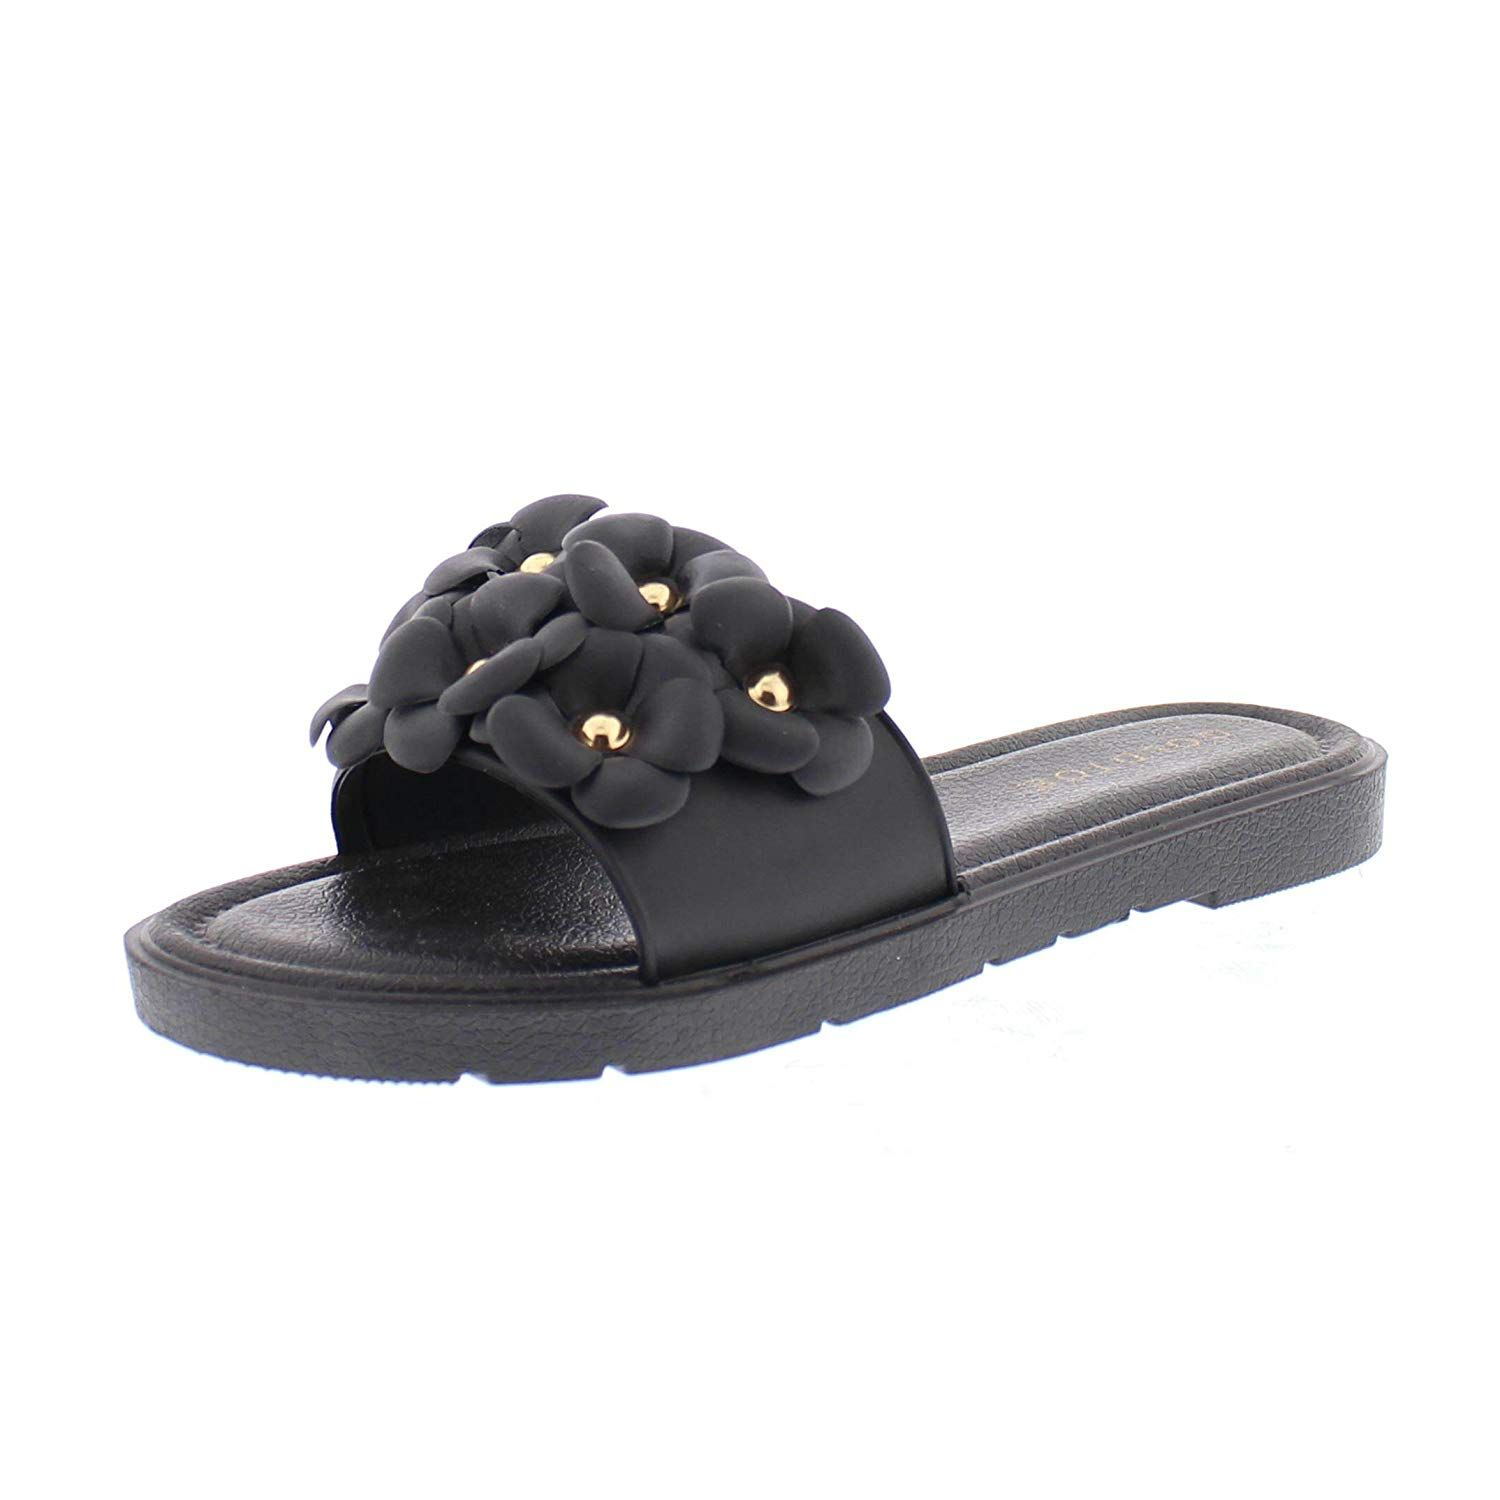 8cc0f5a3c Gold Toe Women's Dorothy Flower Embellished Comfort Slide Sandals, Open Toe  Slip On Summer Slipper Shoes -- Thanks a lot for viewing our picture.